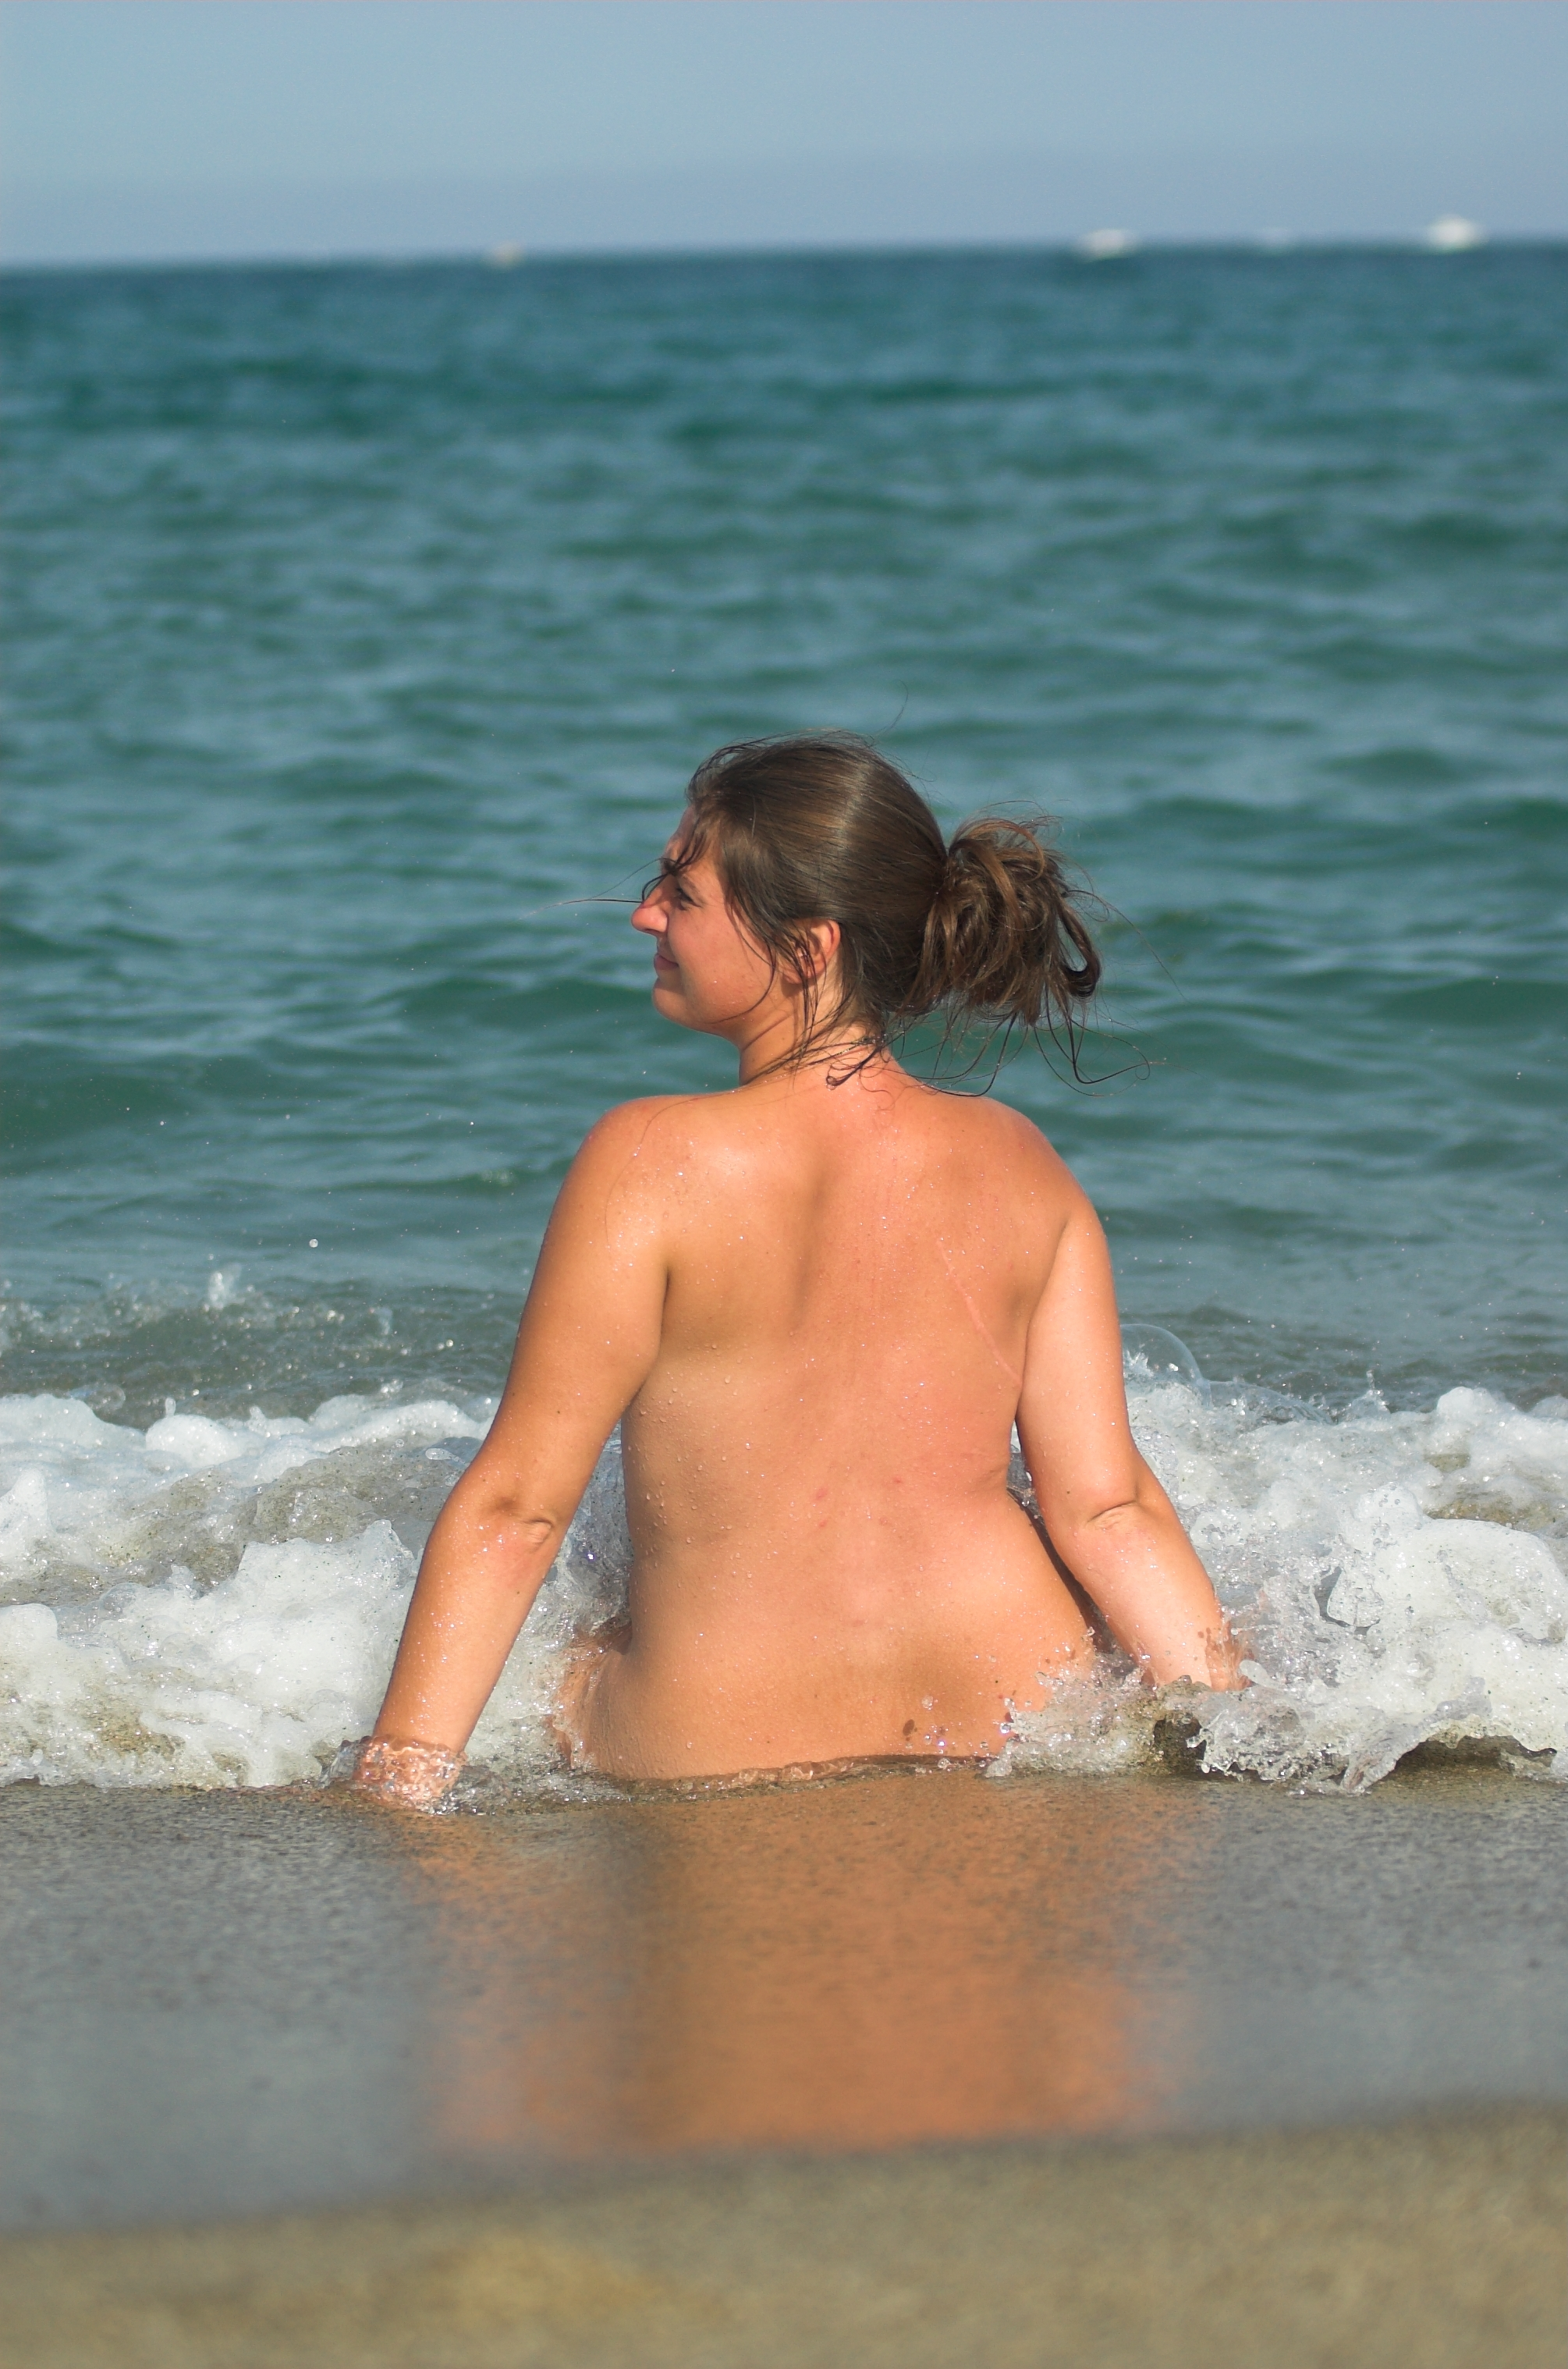 File:Nude on beach.jpg